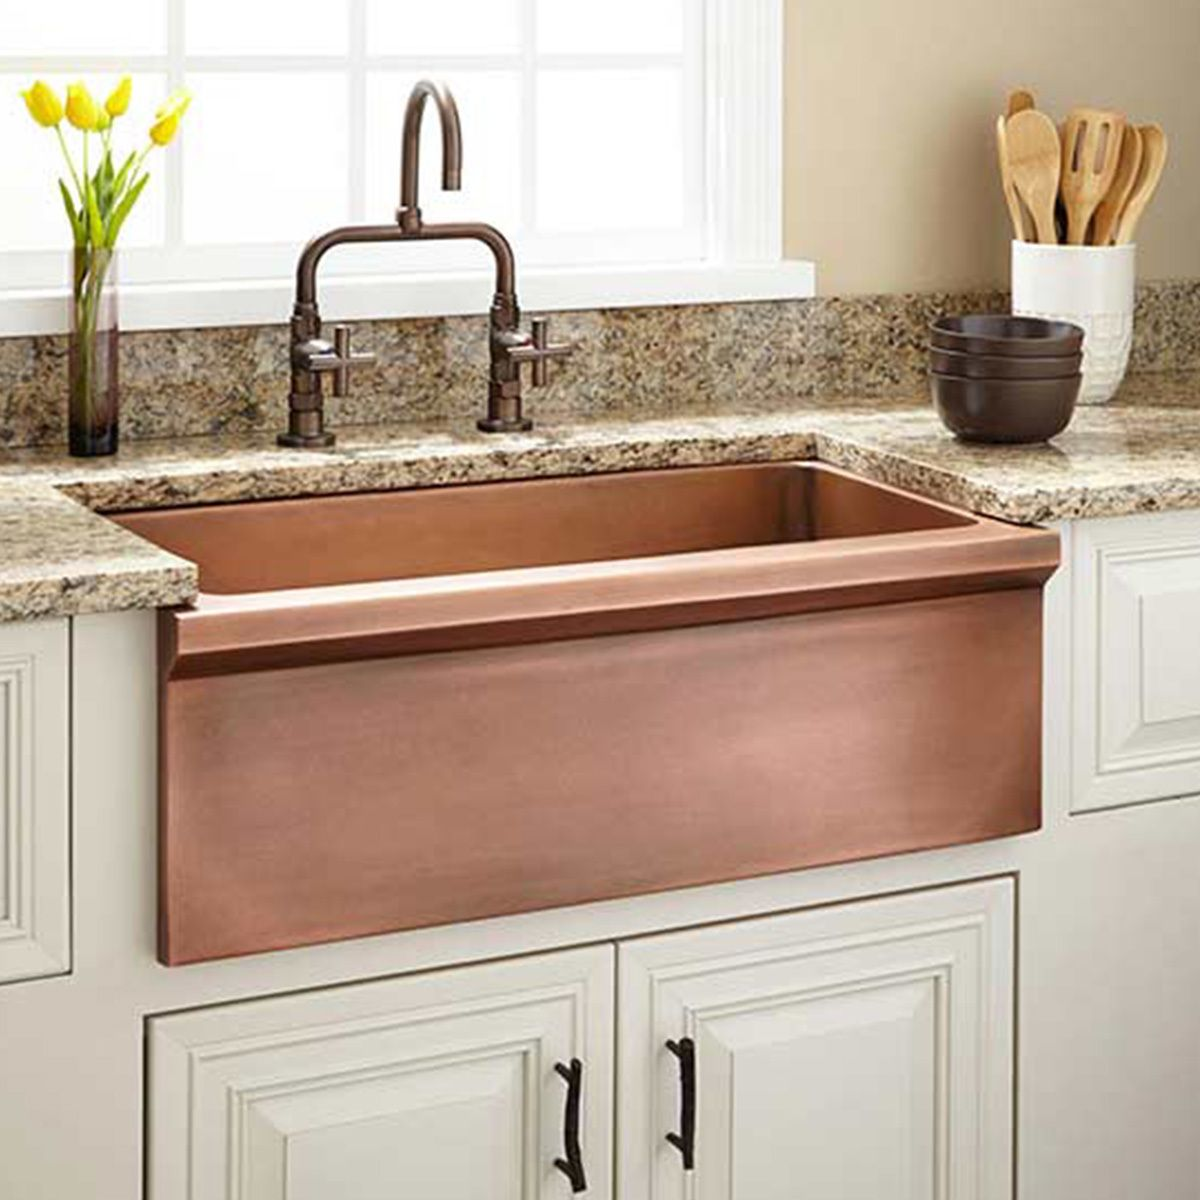 fall in love with these farmhouse kitchen sinks we did farmhouse sink faucet copper on farmhouse kitchen kitchen id=20028